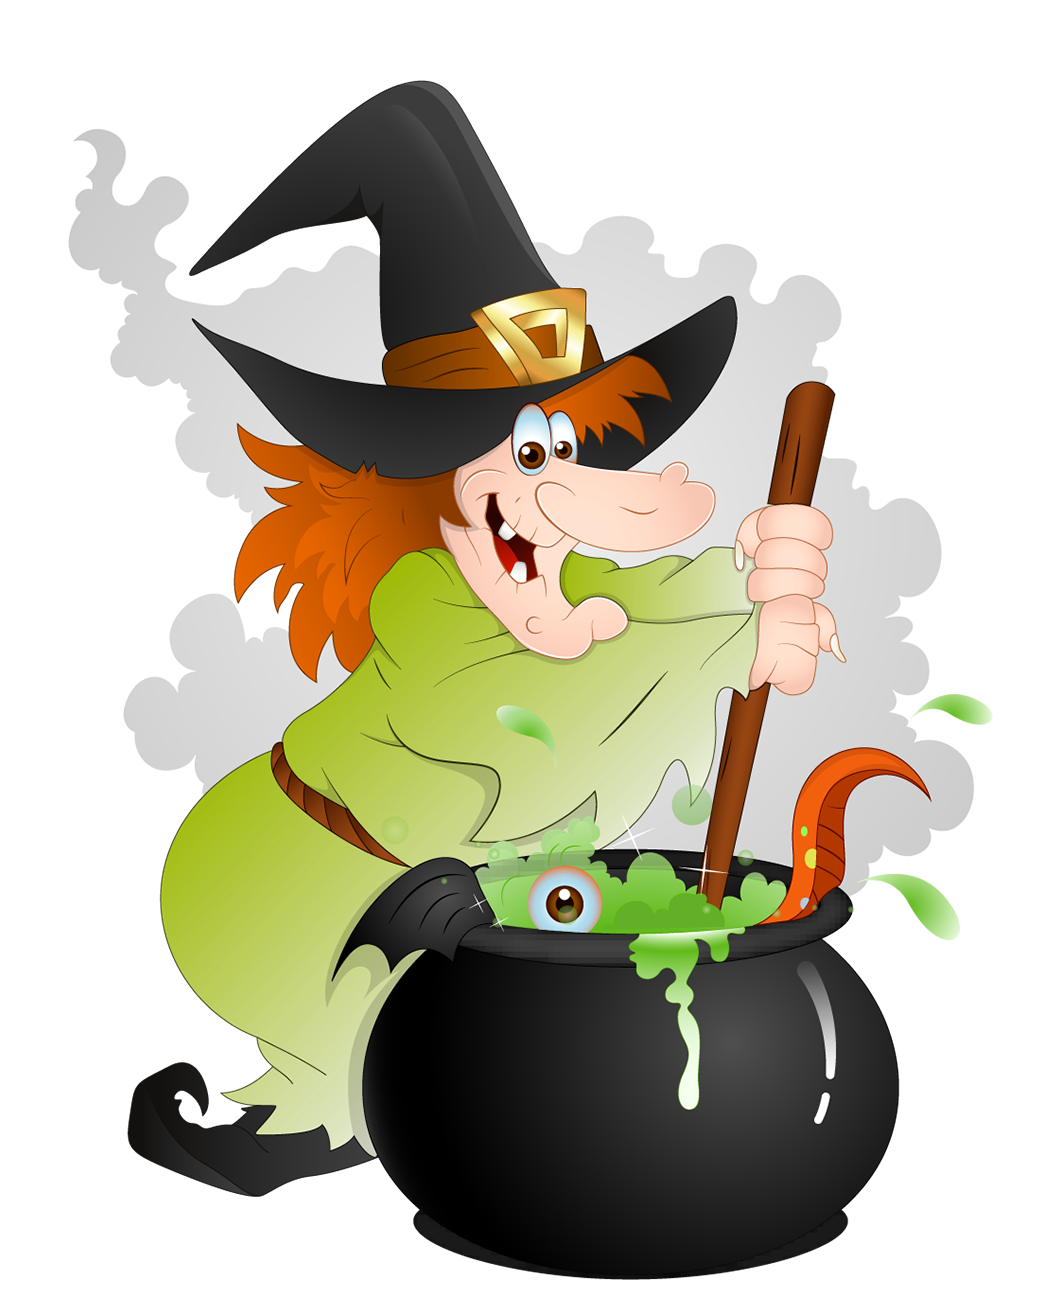 Witches clip art clipart image